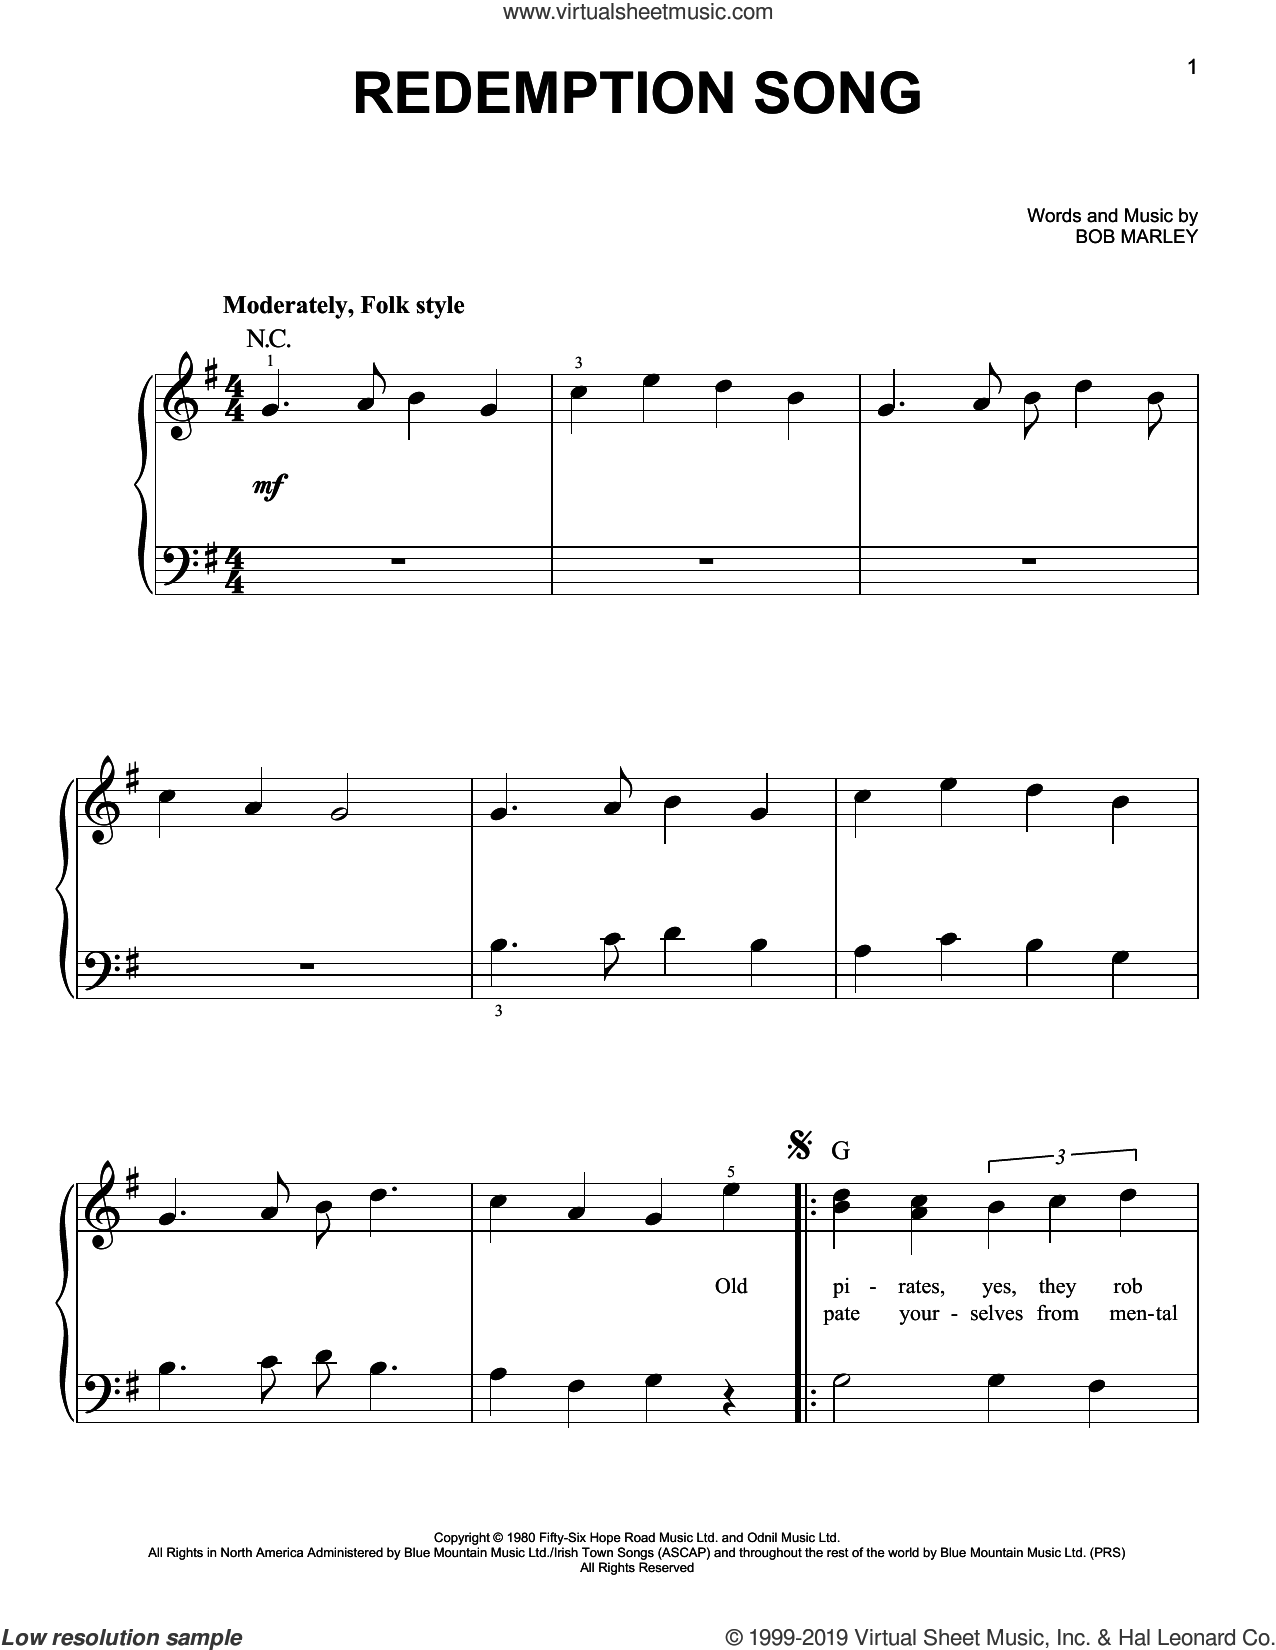 Redemption Song sheet music for piano solo by Bob Marley, beginner skill level